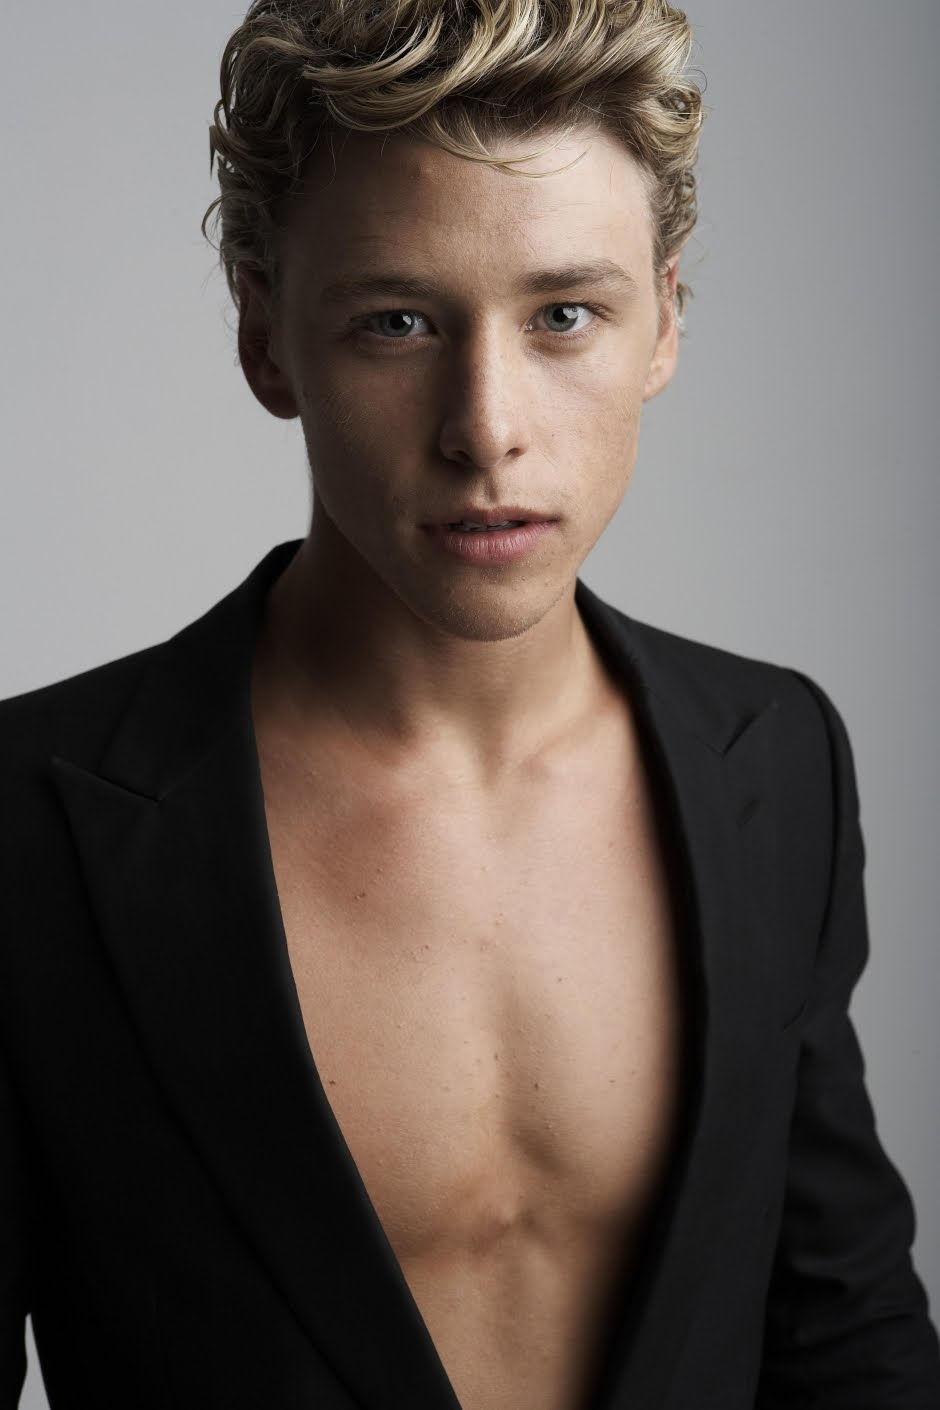 Mitch Hewer (born 1989) nudes (76 photos) Sideboobs, Twitter, swimsuit